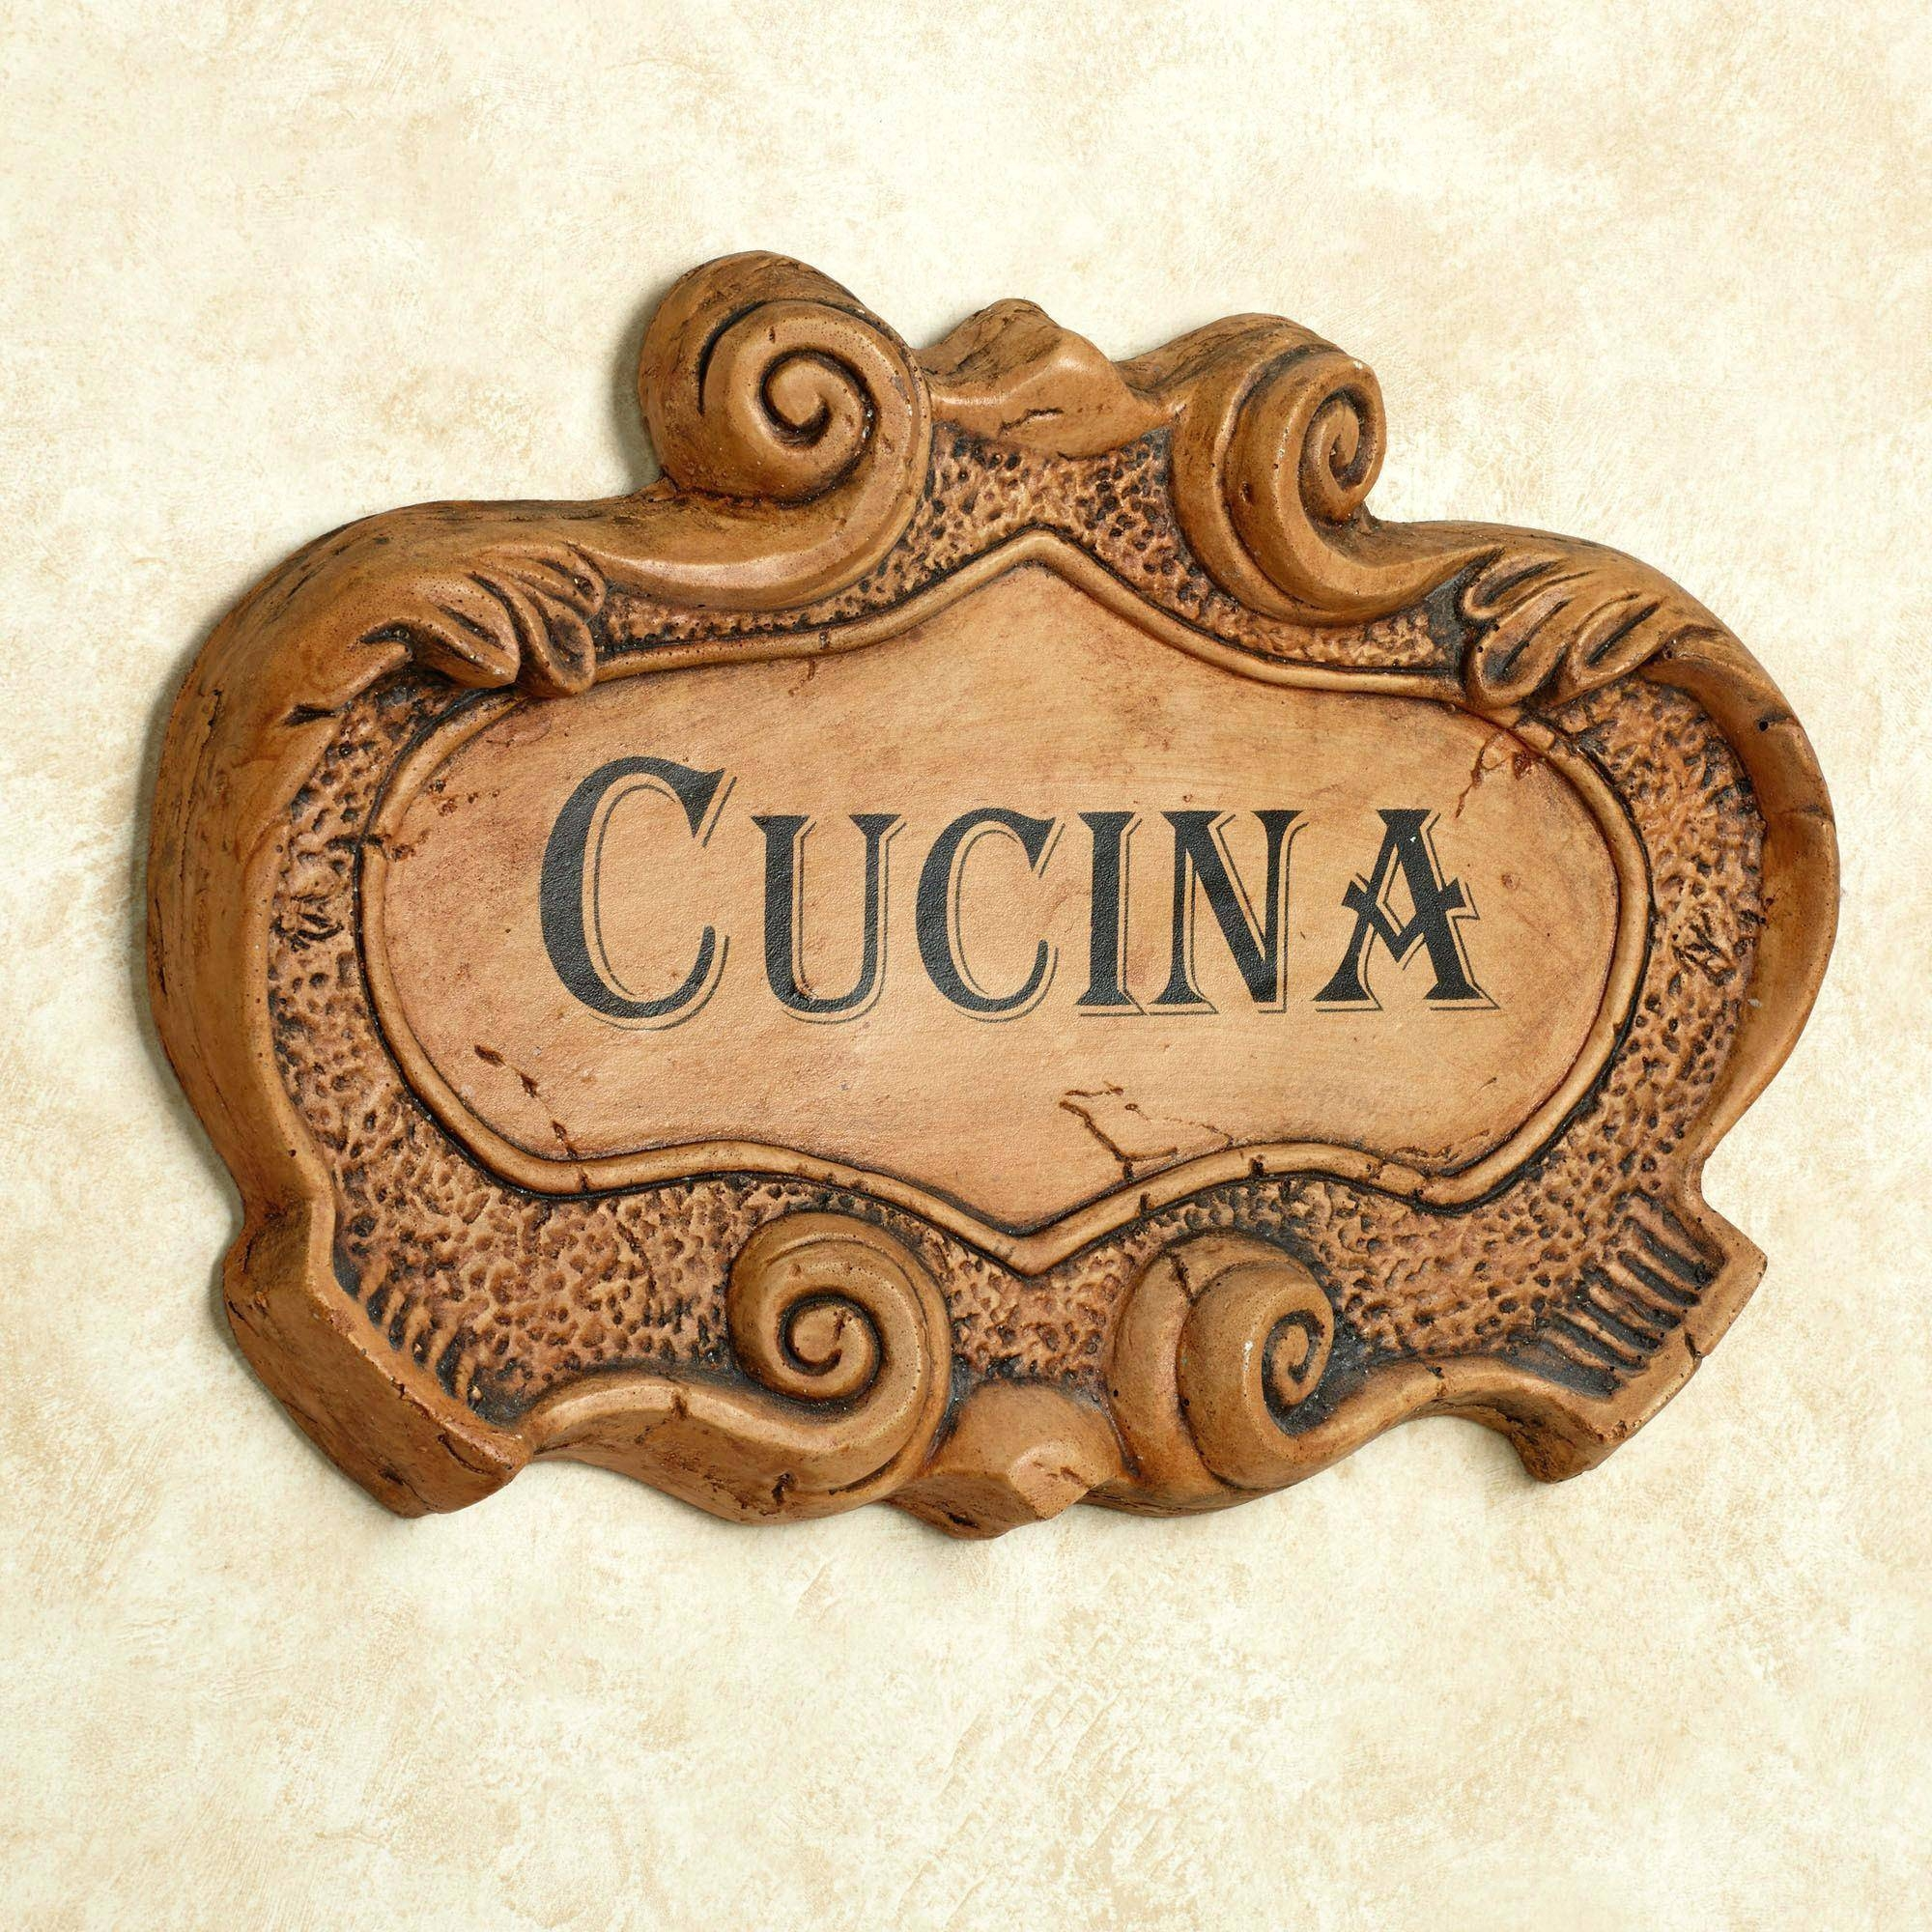 Wall Decor : Modern Dress Up Your Walls With Pieces From This Within Most Recent Cucina Wall Art (View 2 of 30)